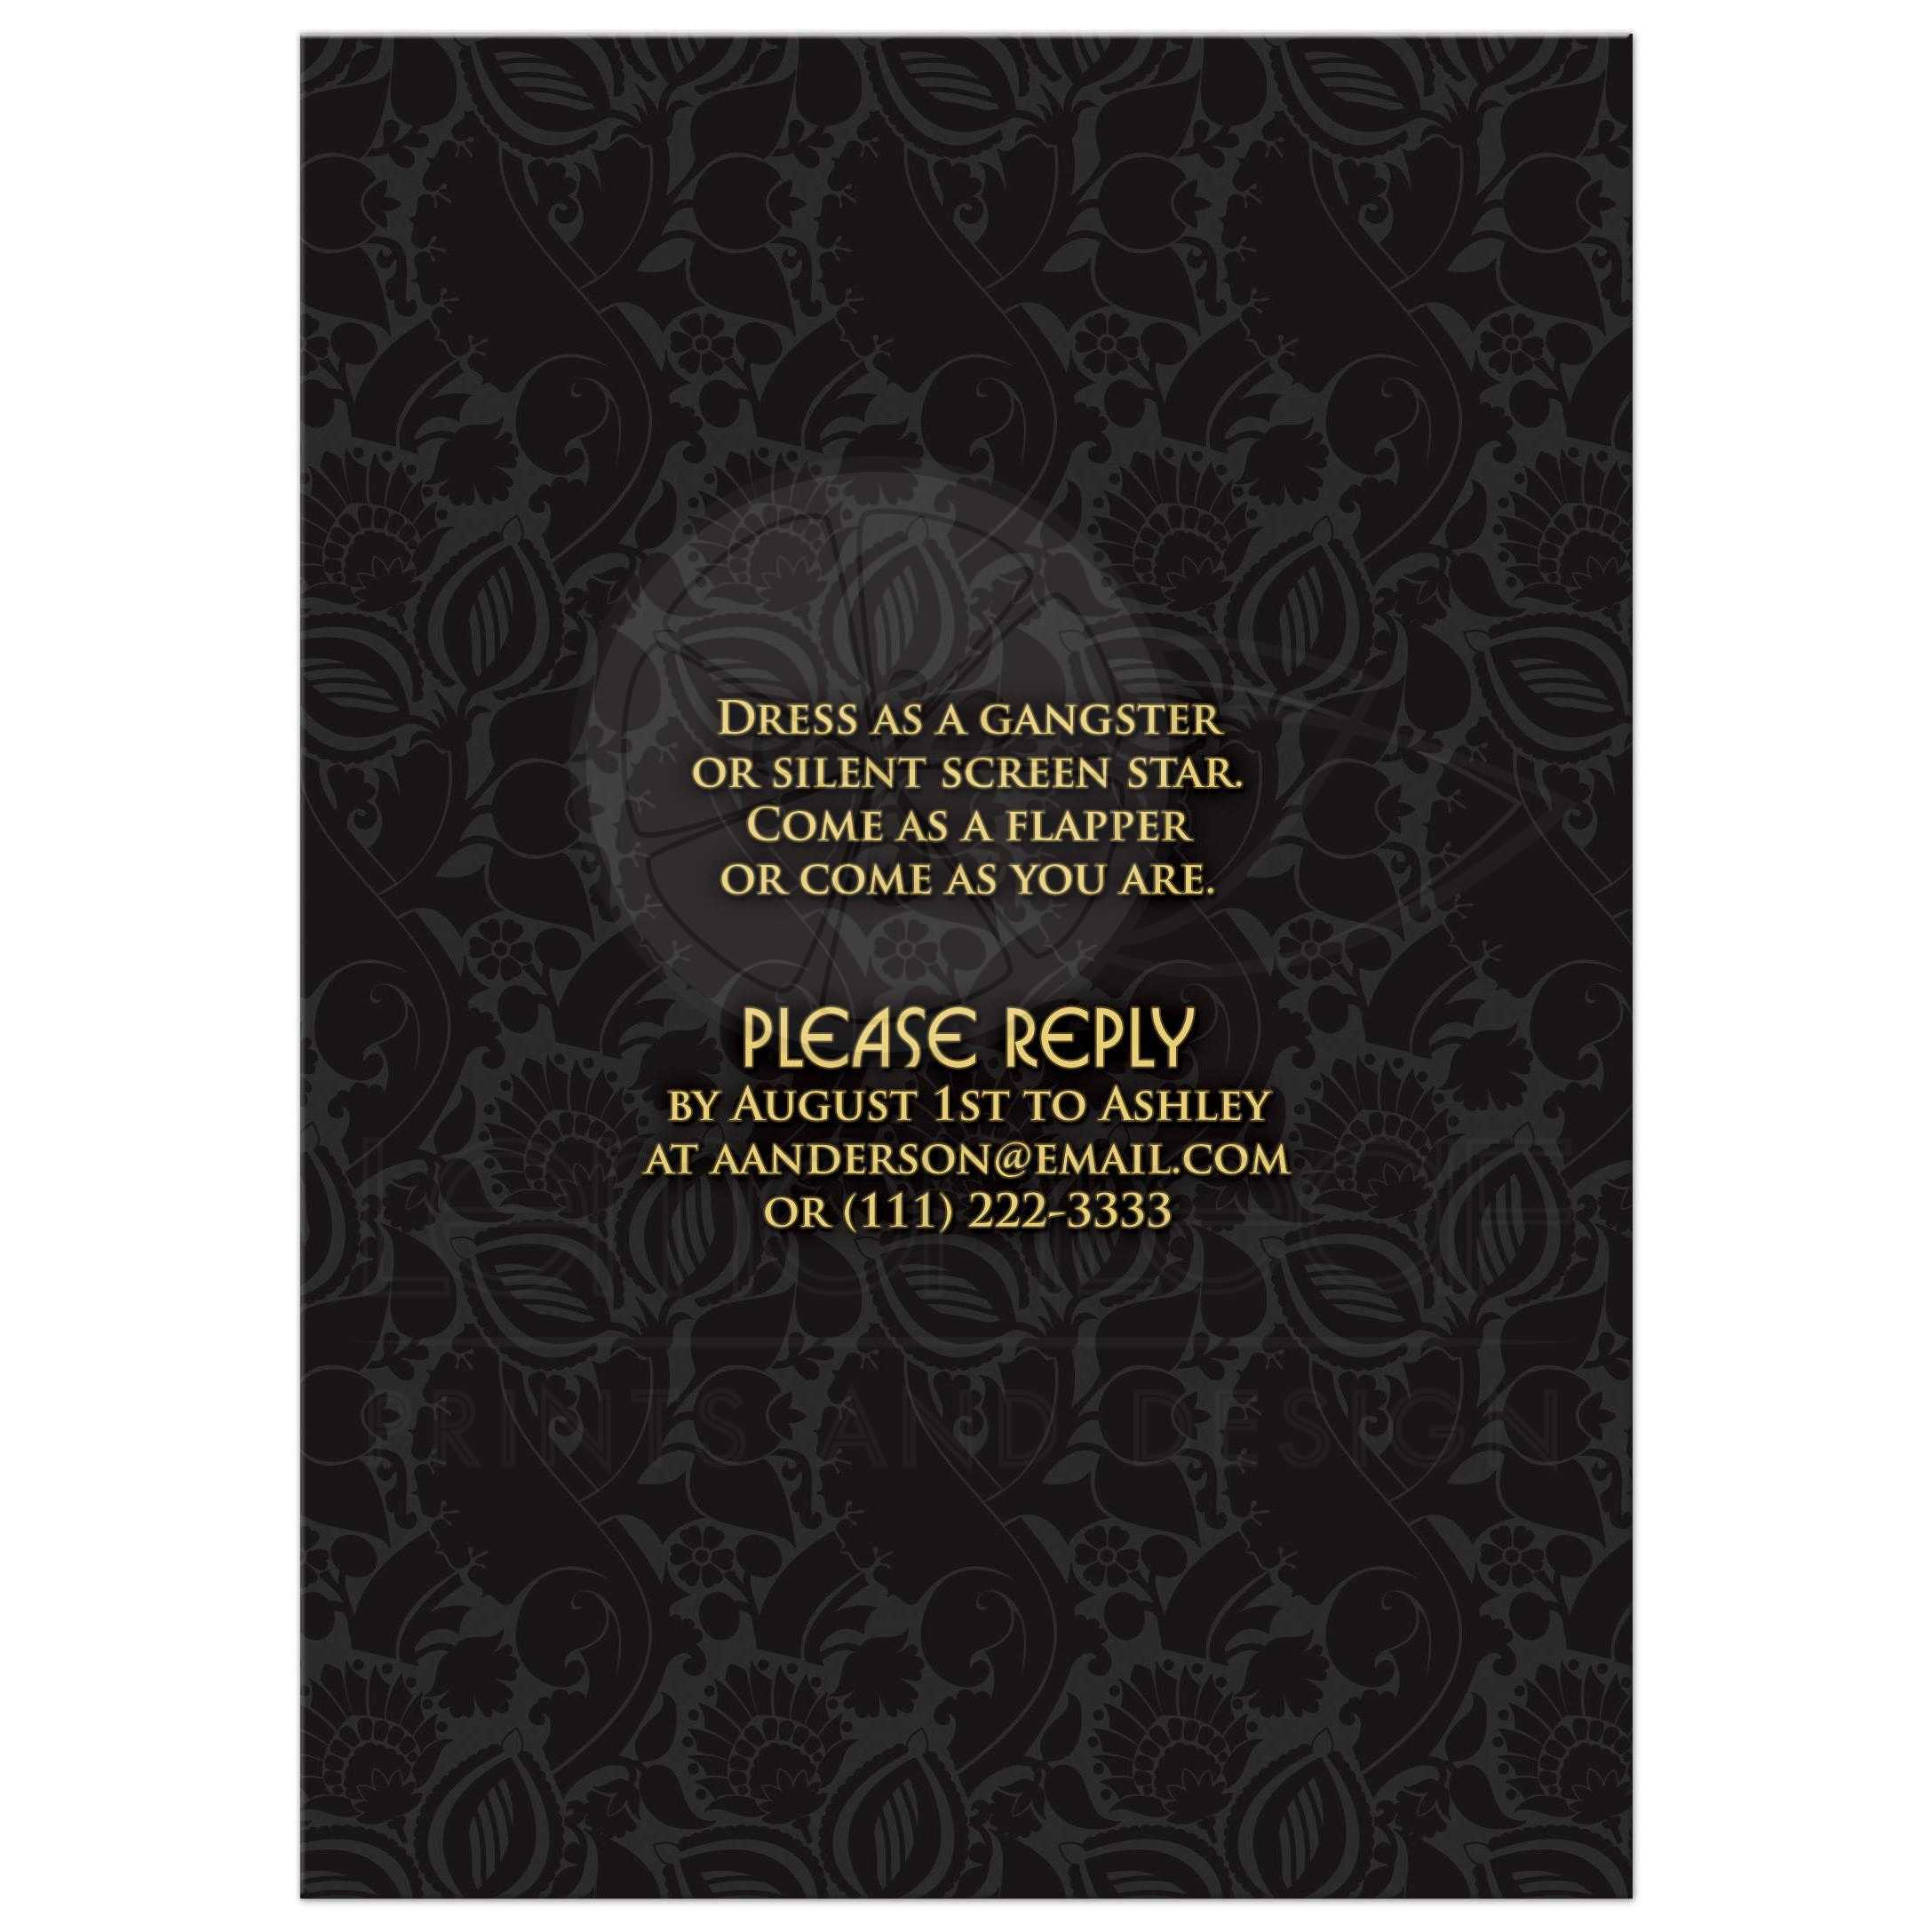 Roaring 20s Engagement Party Invitation Black Gold Art Deco – Gangster Party Invitations